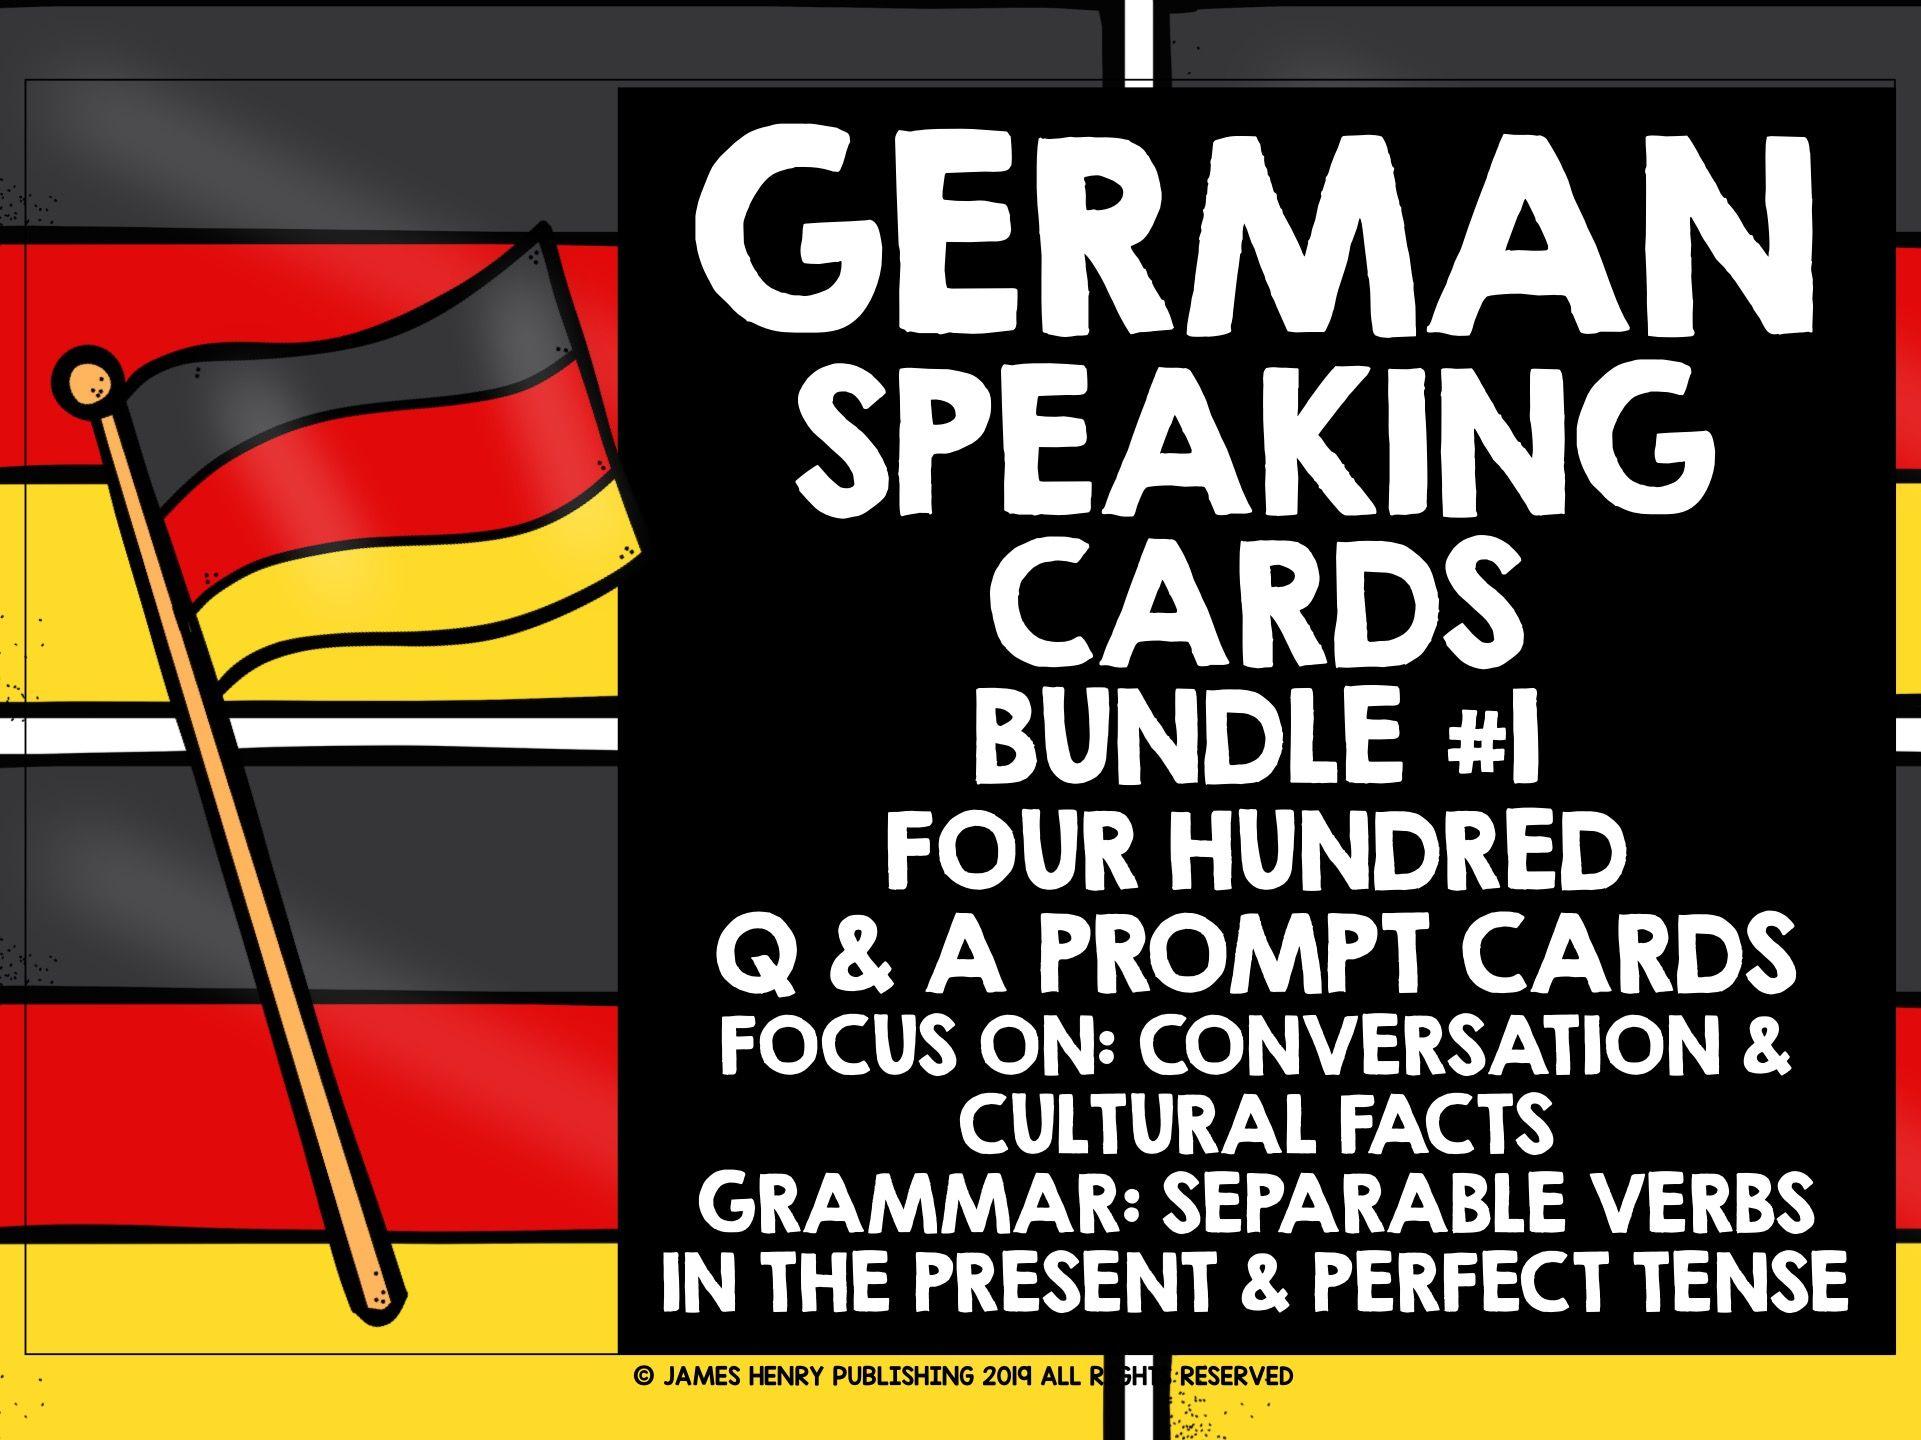 GERMAN SPEAKING PRACTICE BUNDLE #1